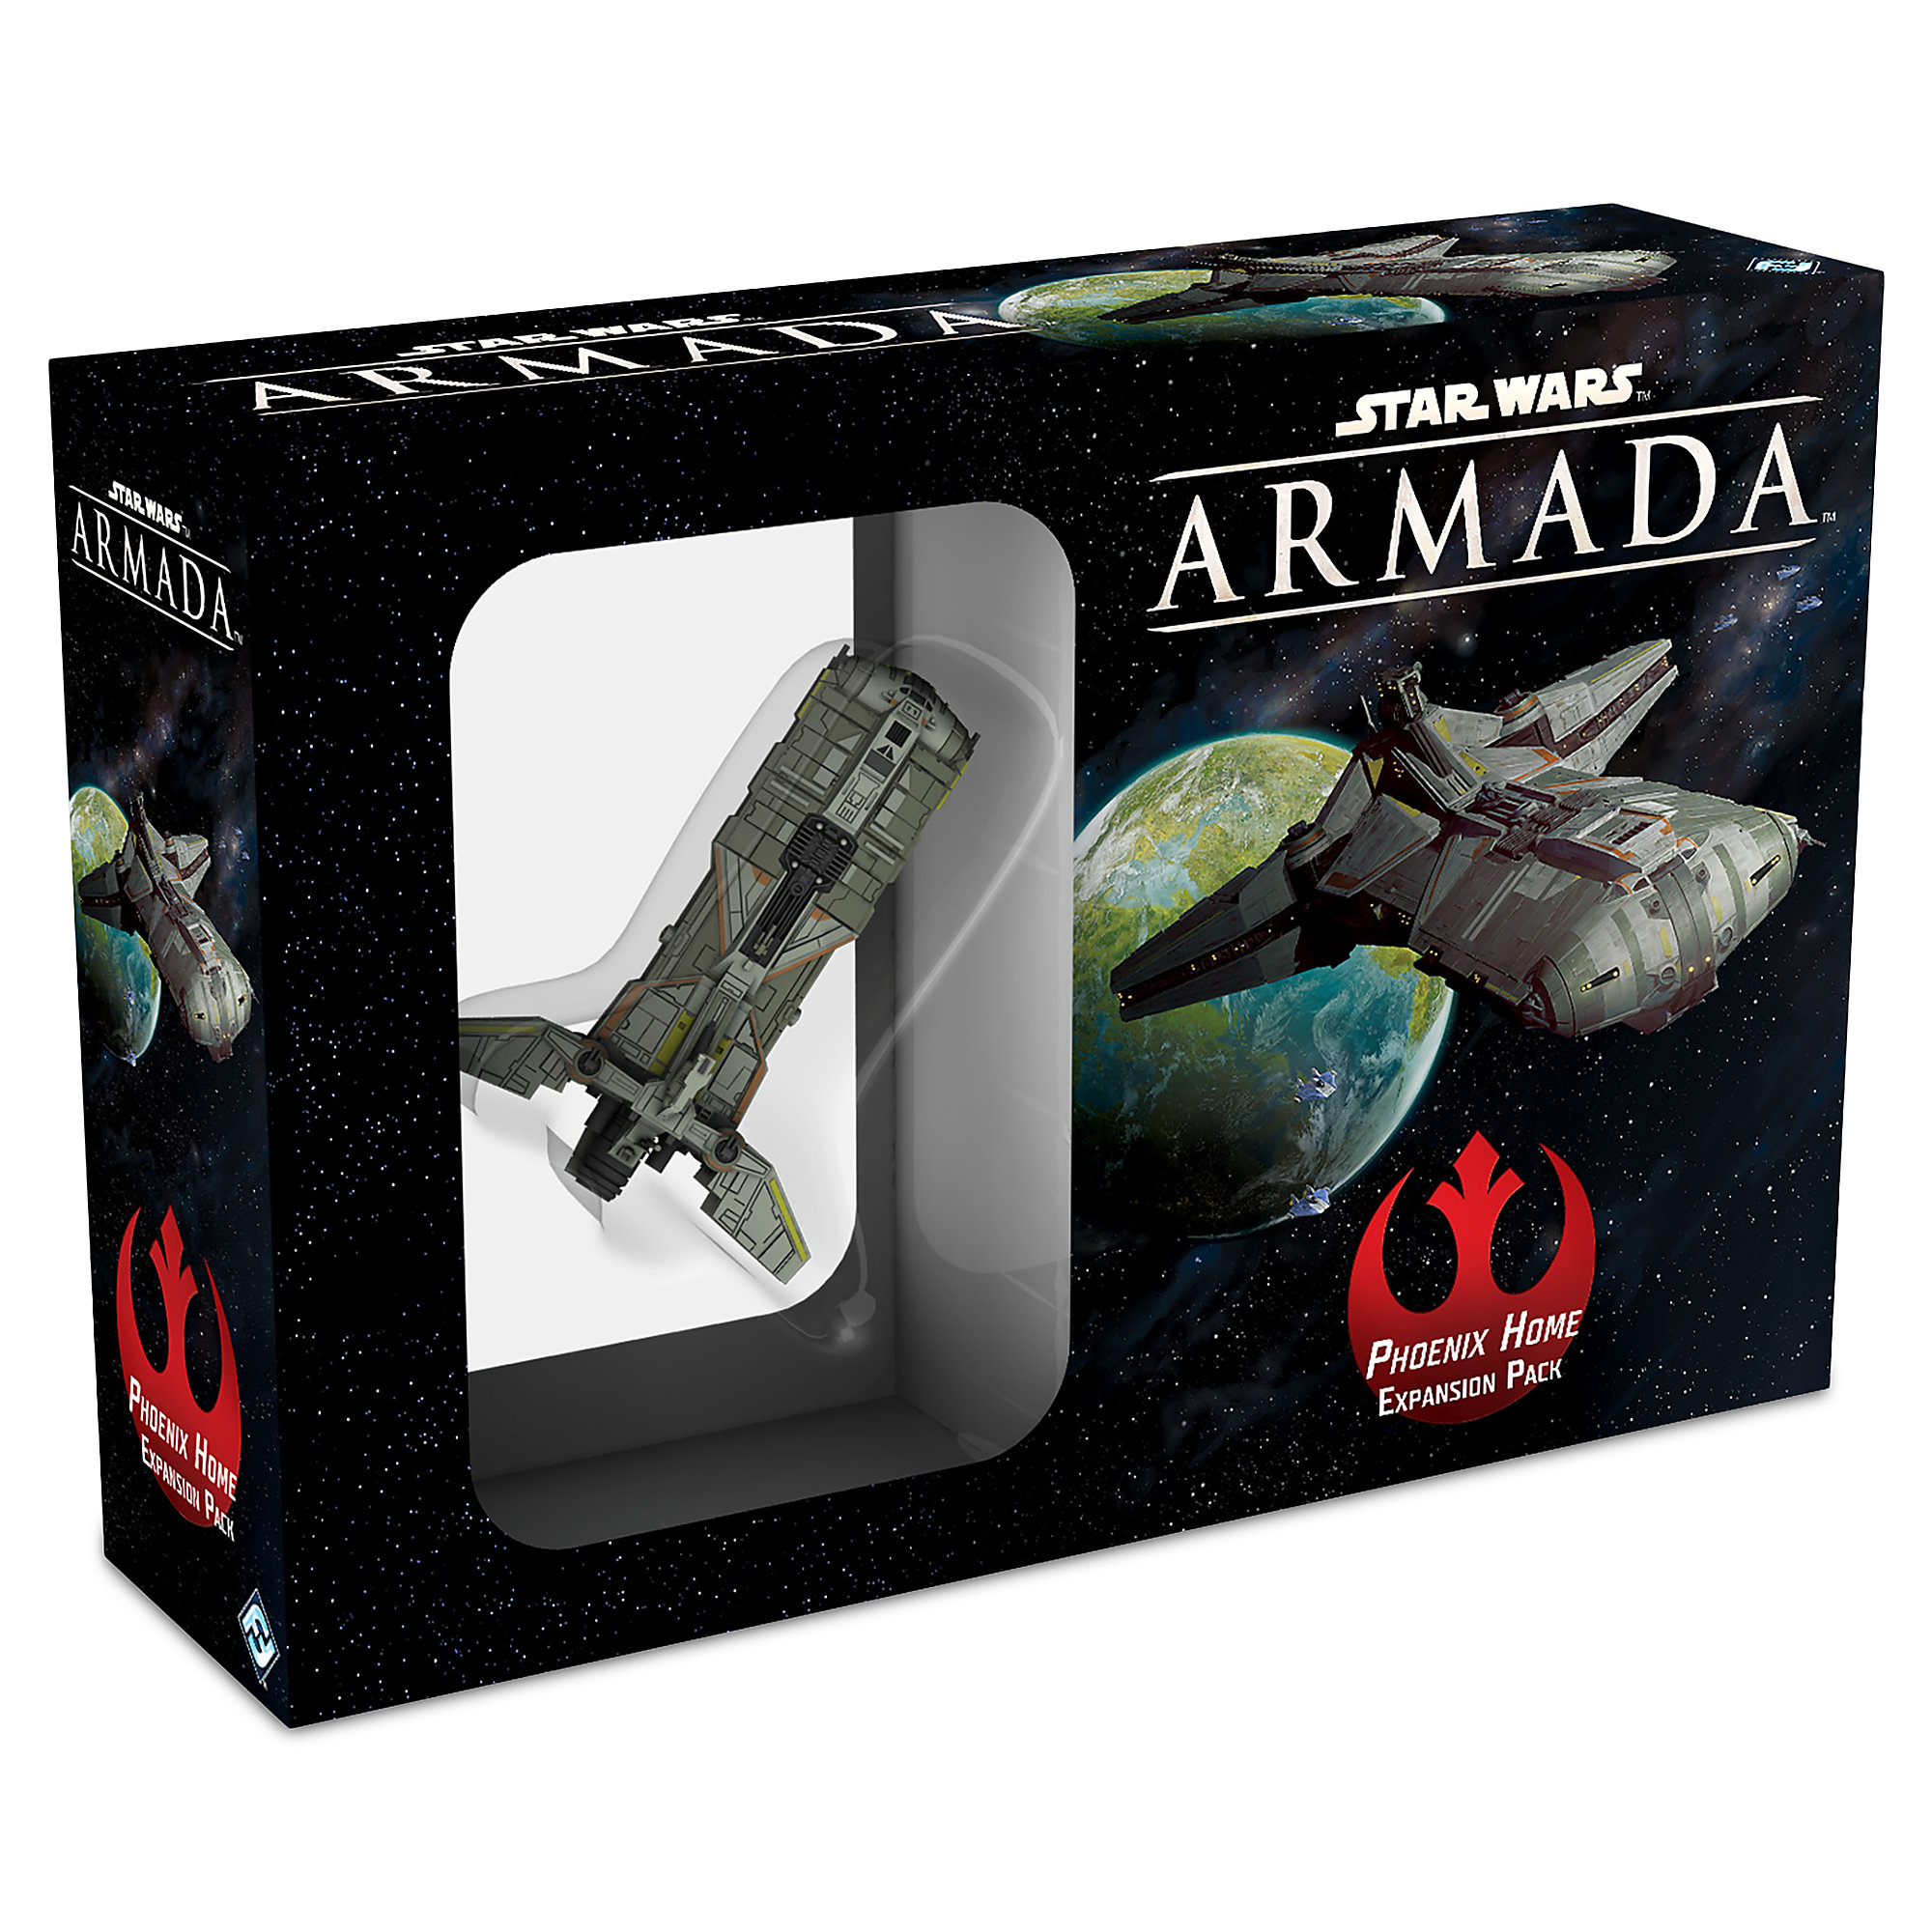 Star Wars: Armada Game - Phoenix Home Expansion Pack